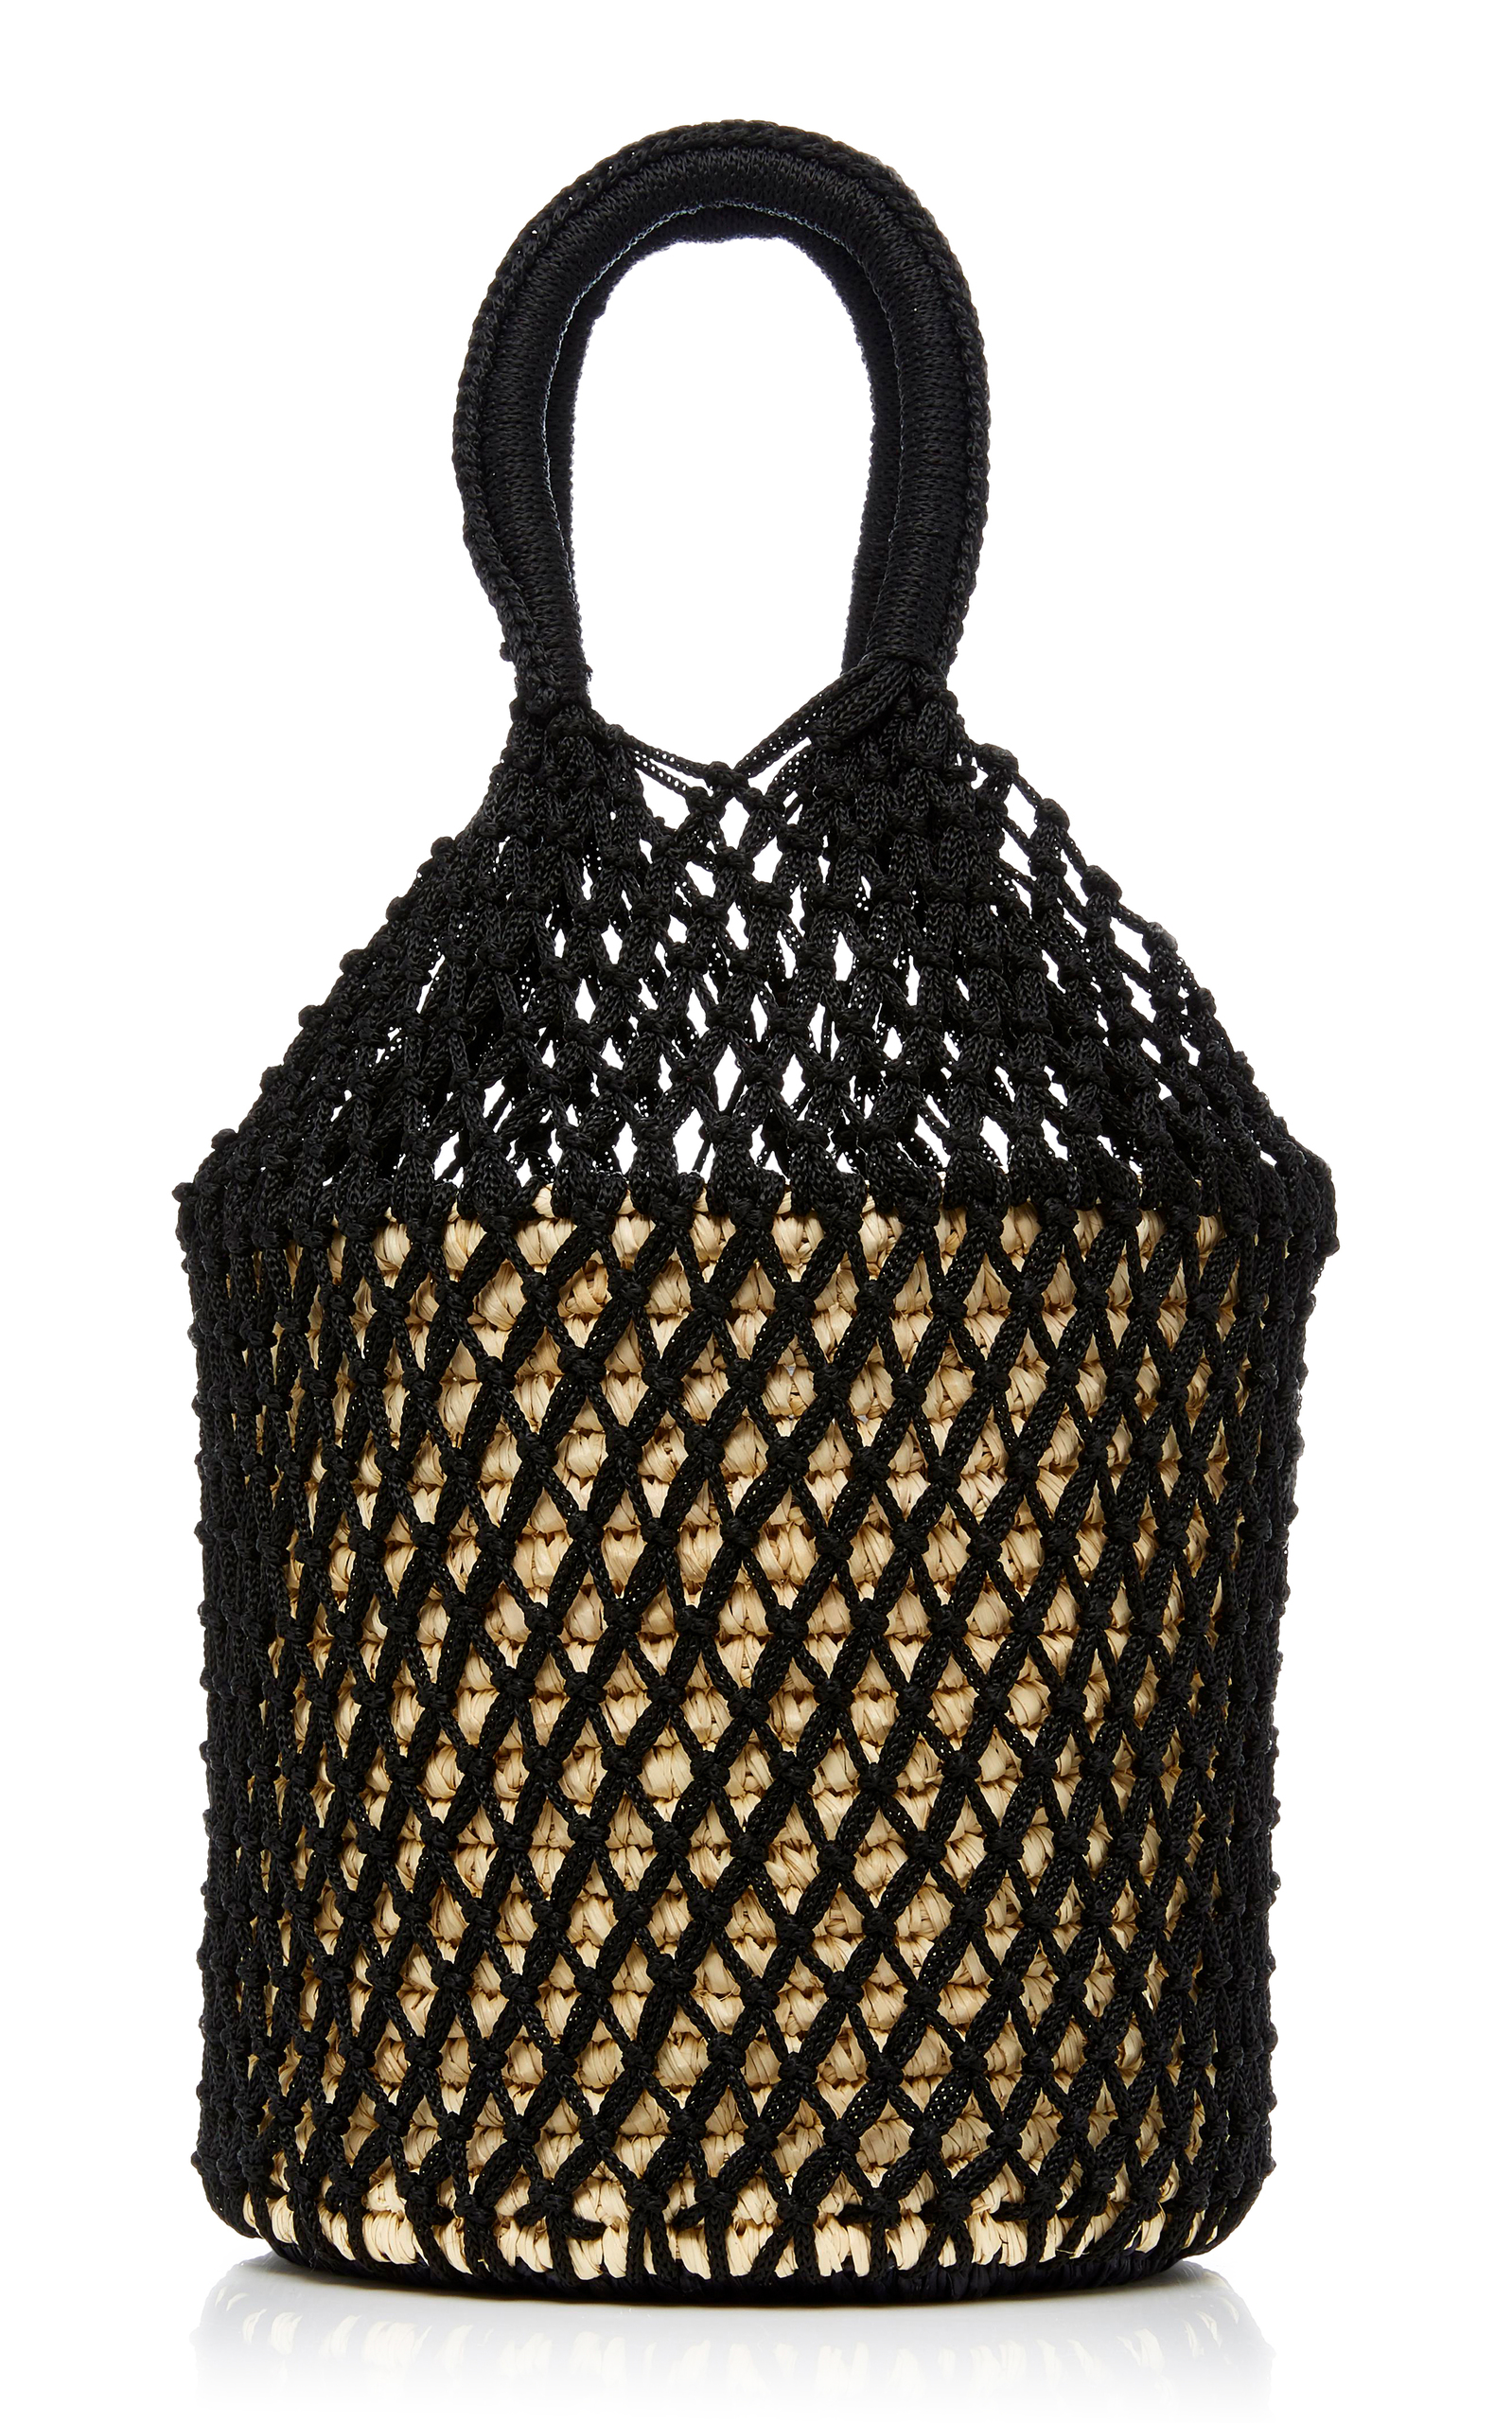 SS 1102 TOTE WITH NET UNIQUE PRODUCT.jpg